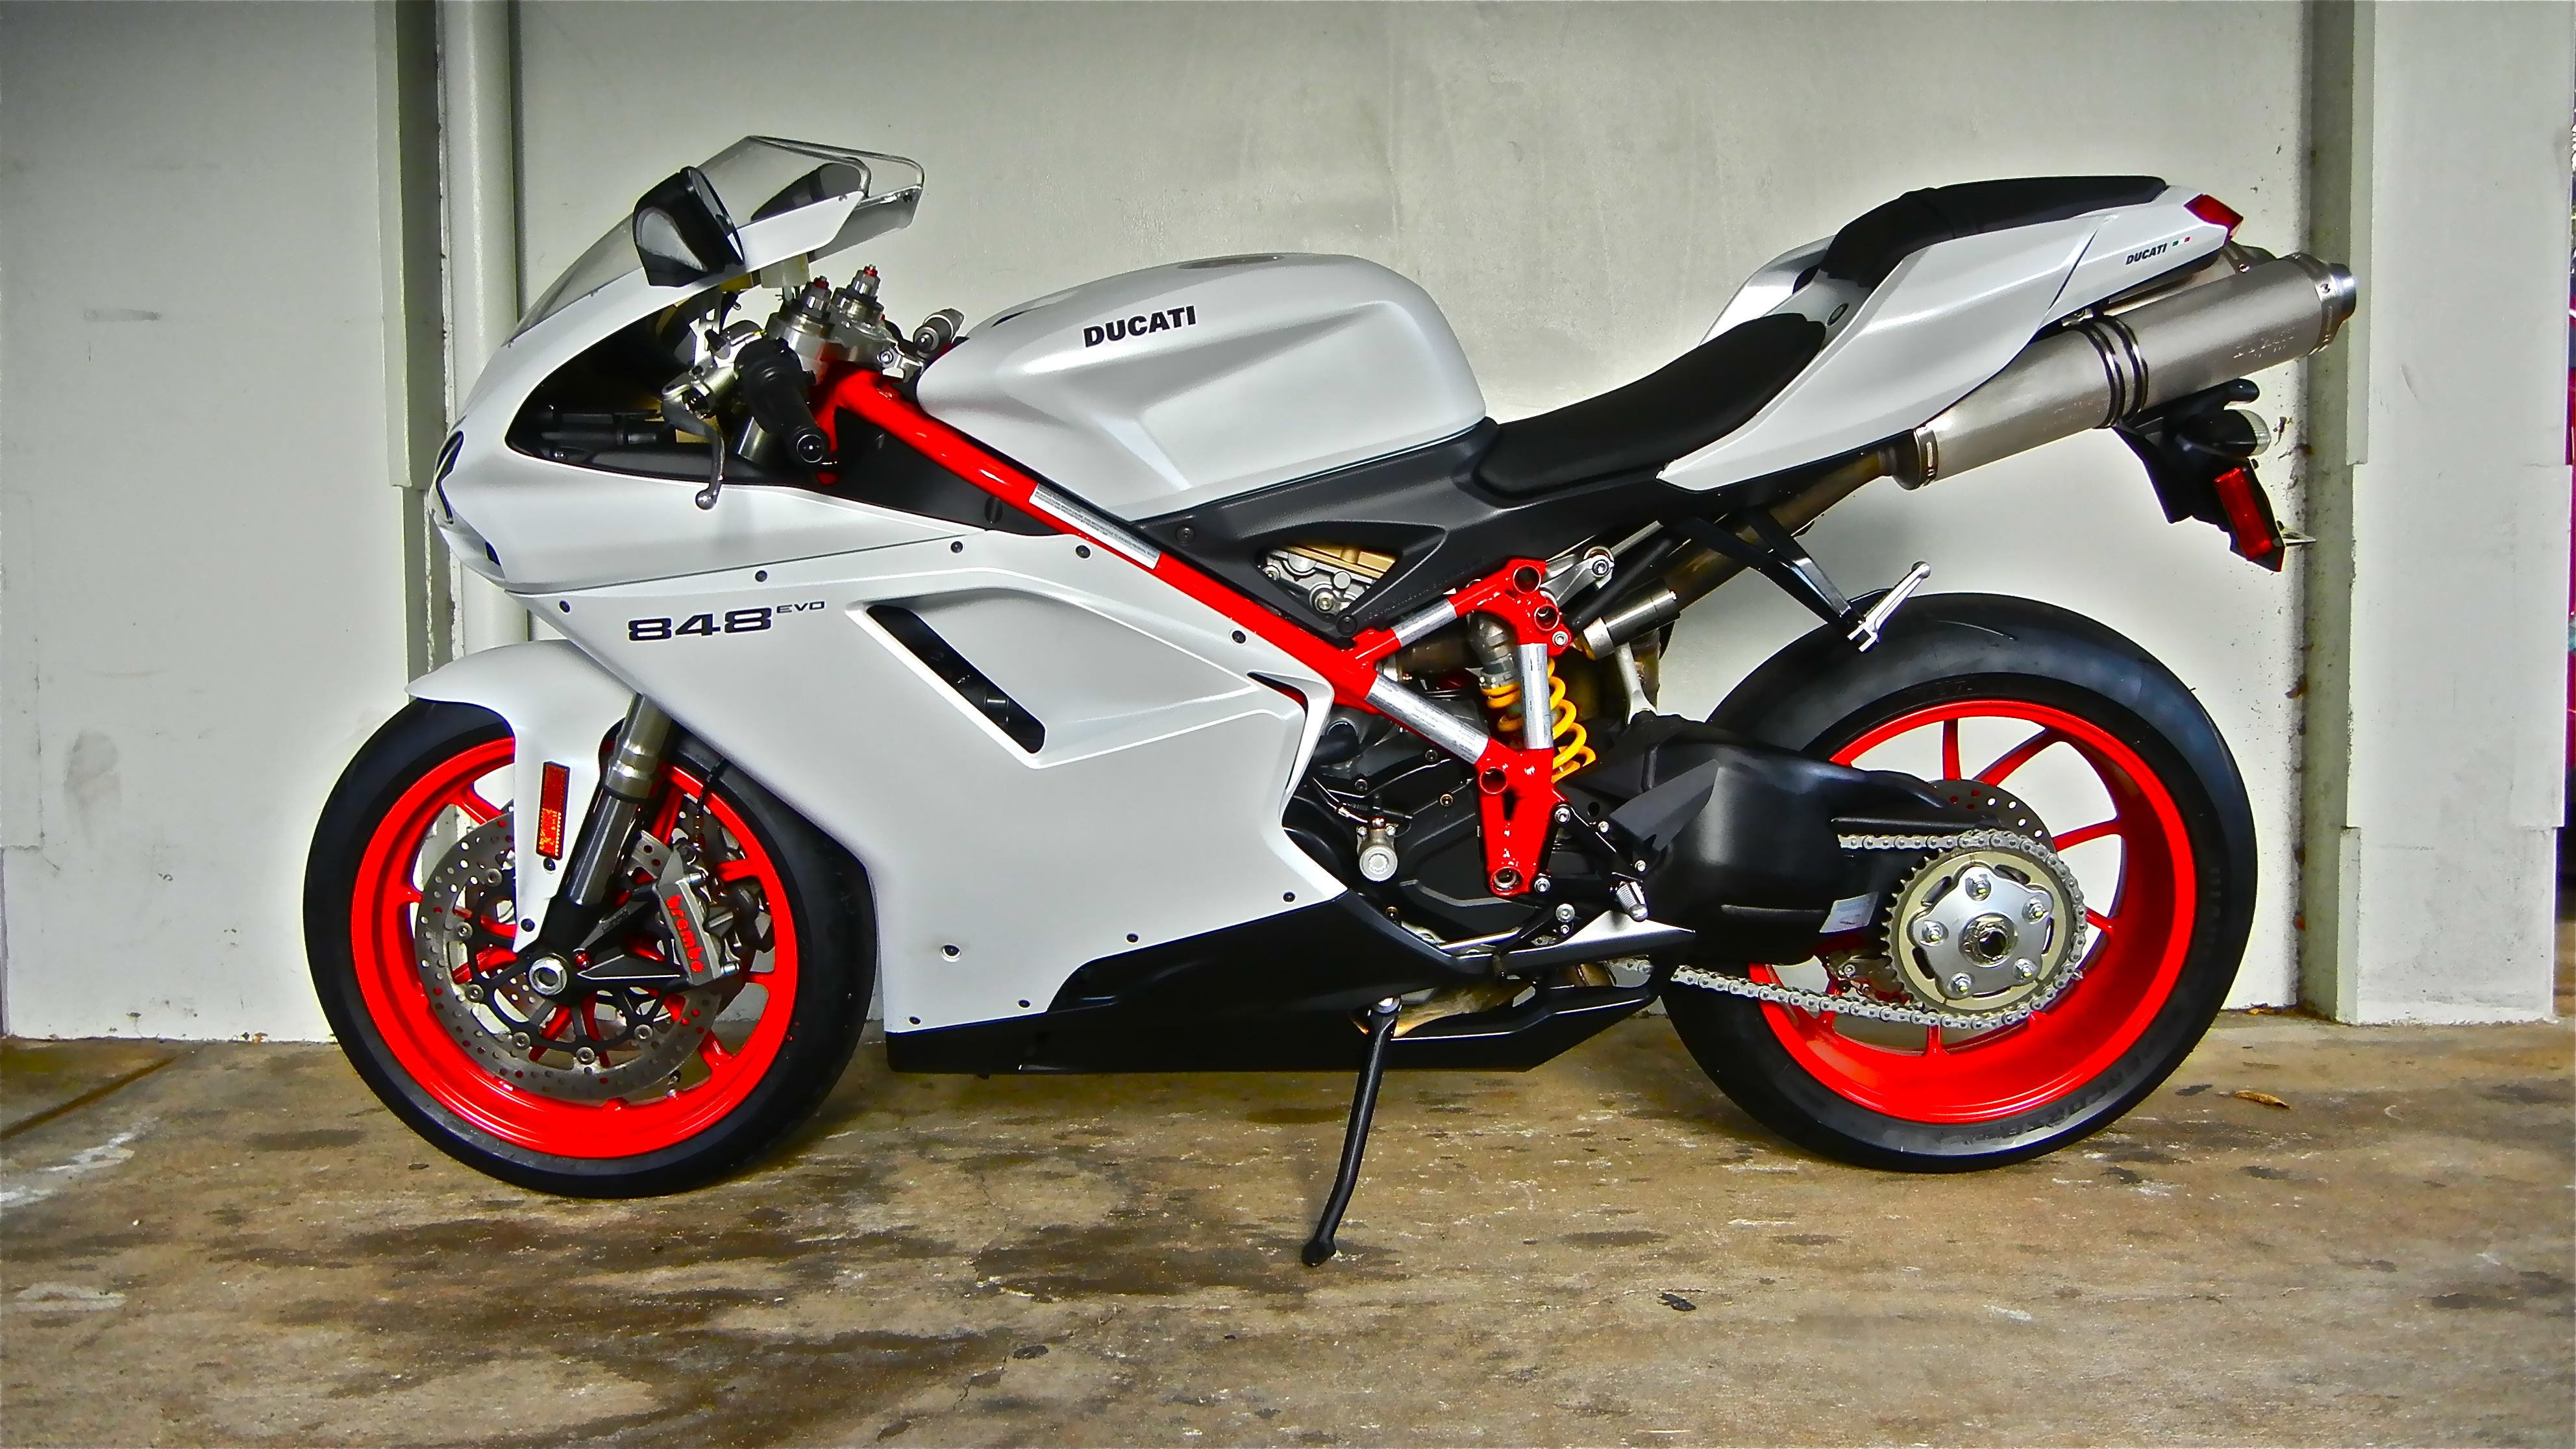 Ducati 848 EVO: pics, specs and list of seriess by year ...